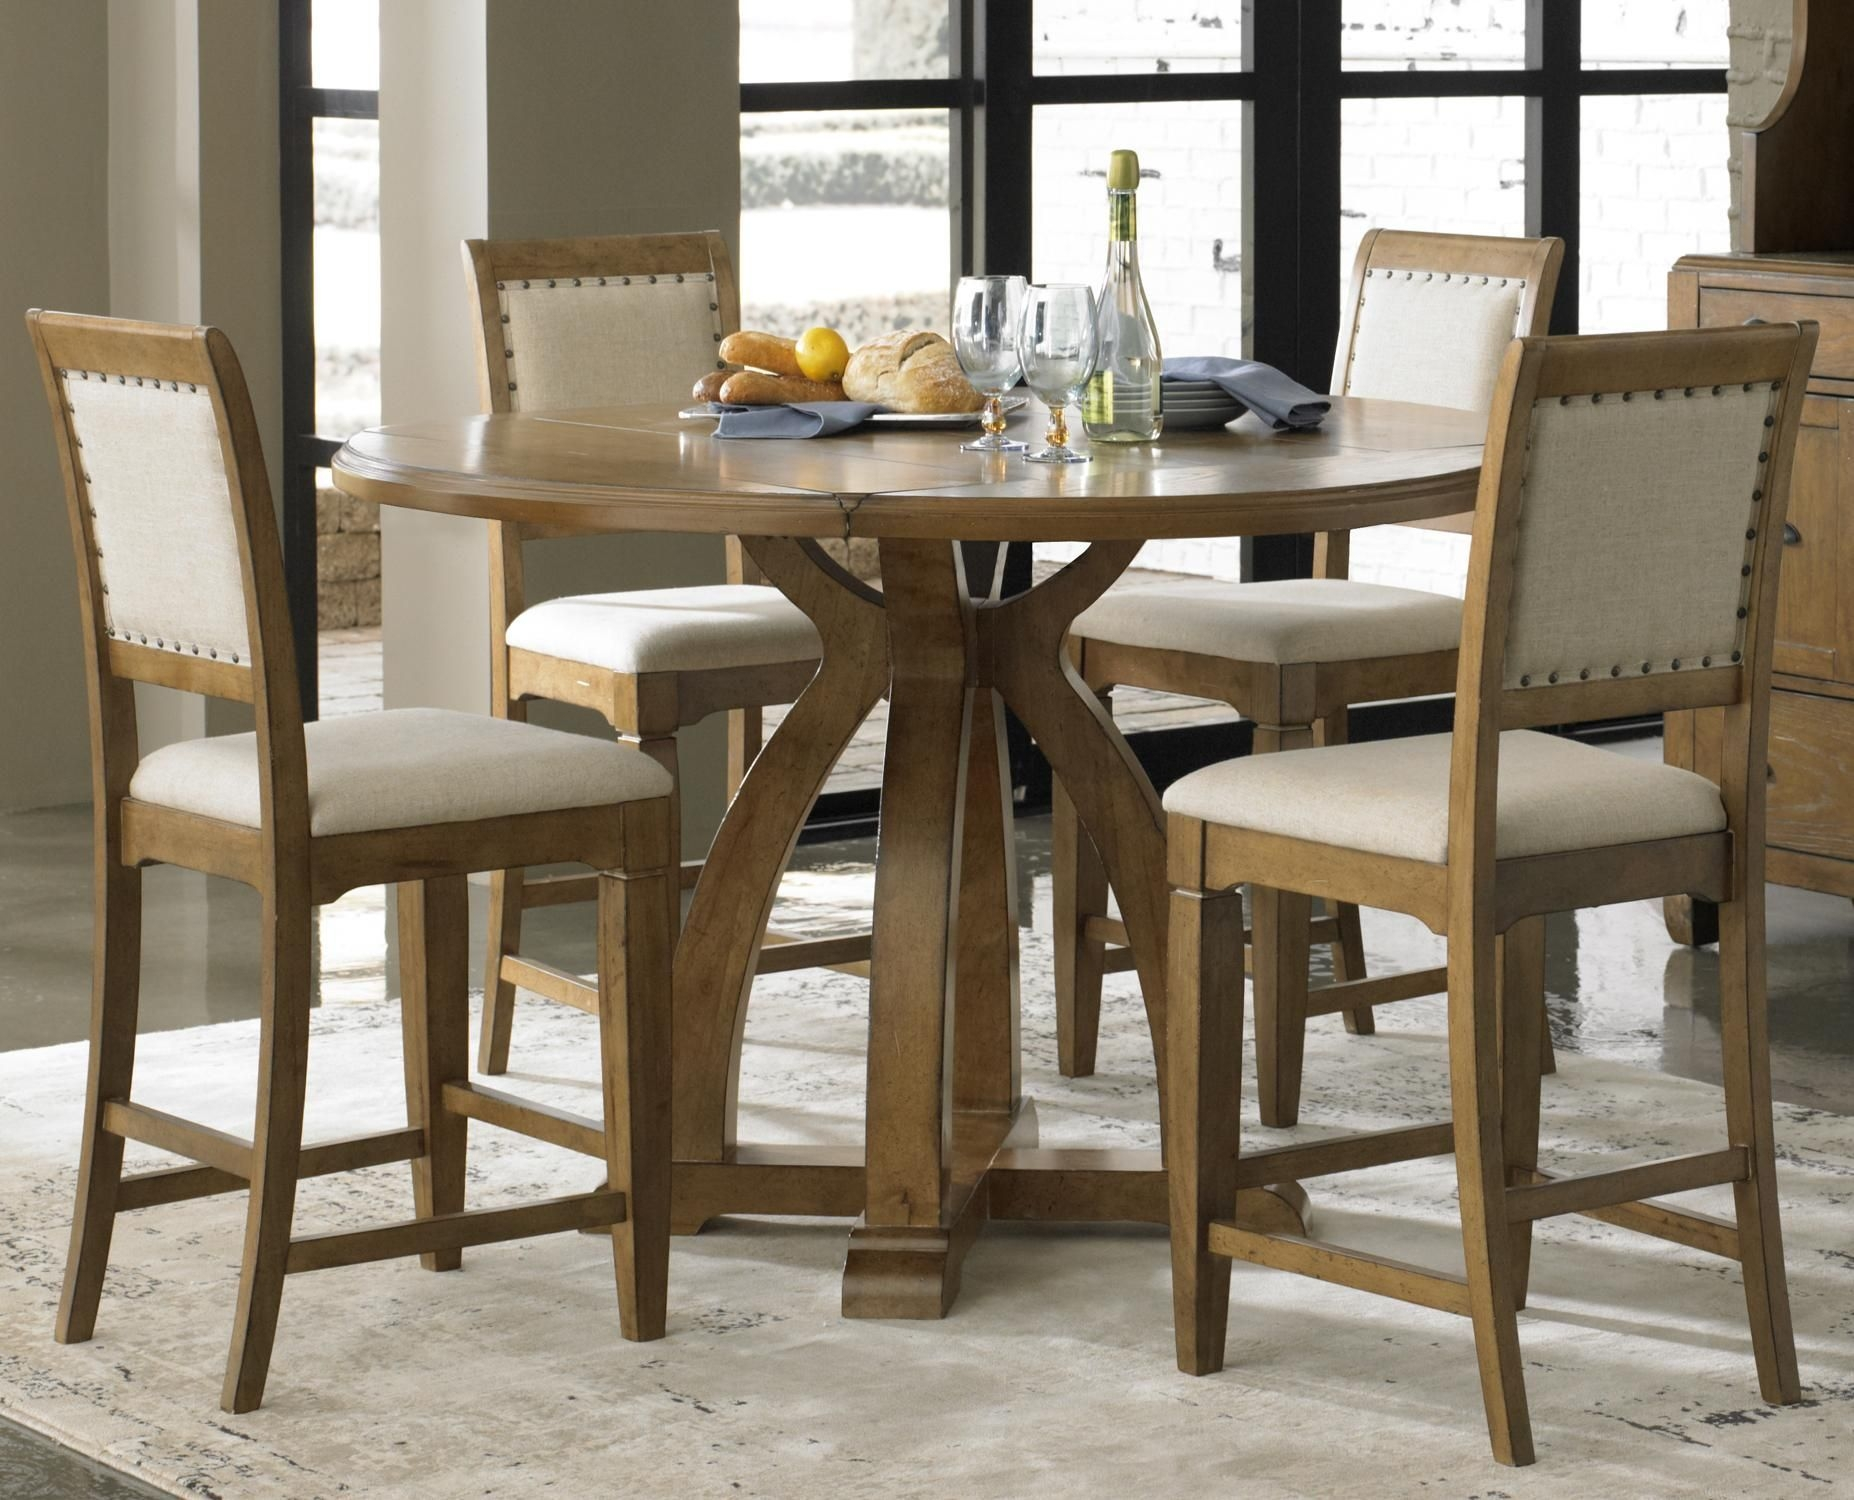 Eatin Hightop Idea 5Piece Gathering Table Set With 4 Upholstered Counter Height Chairs